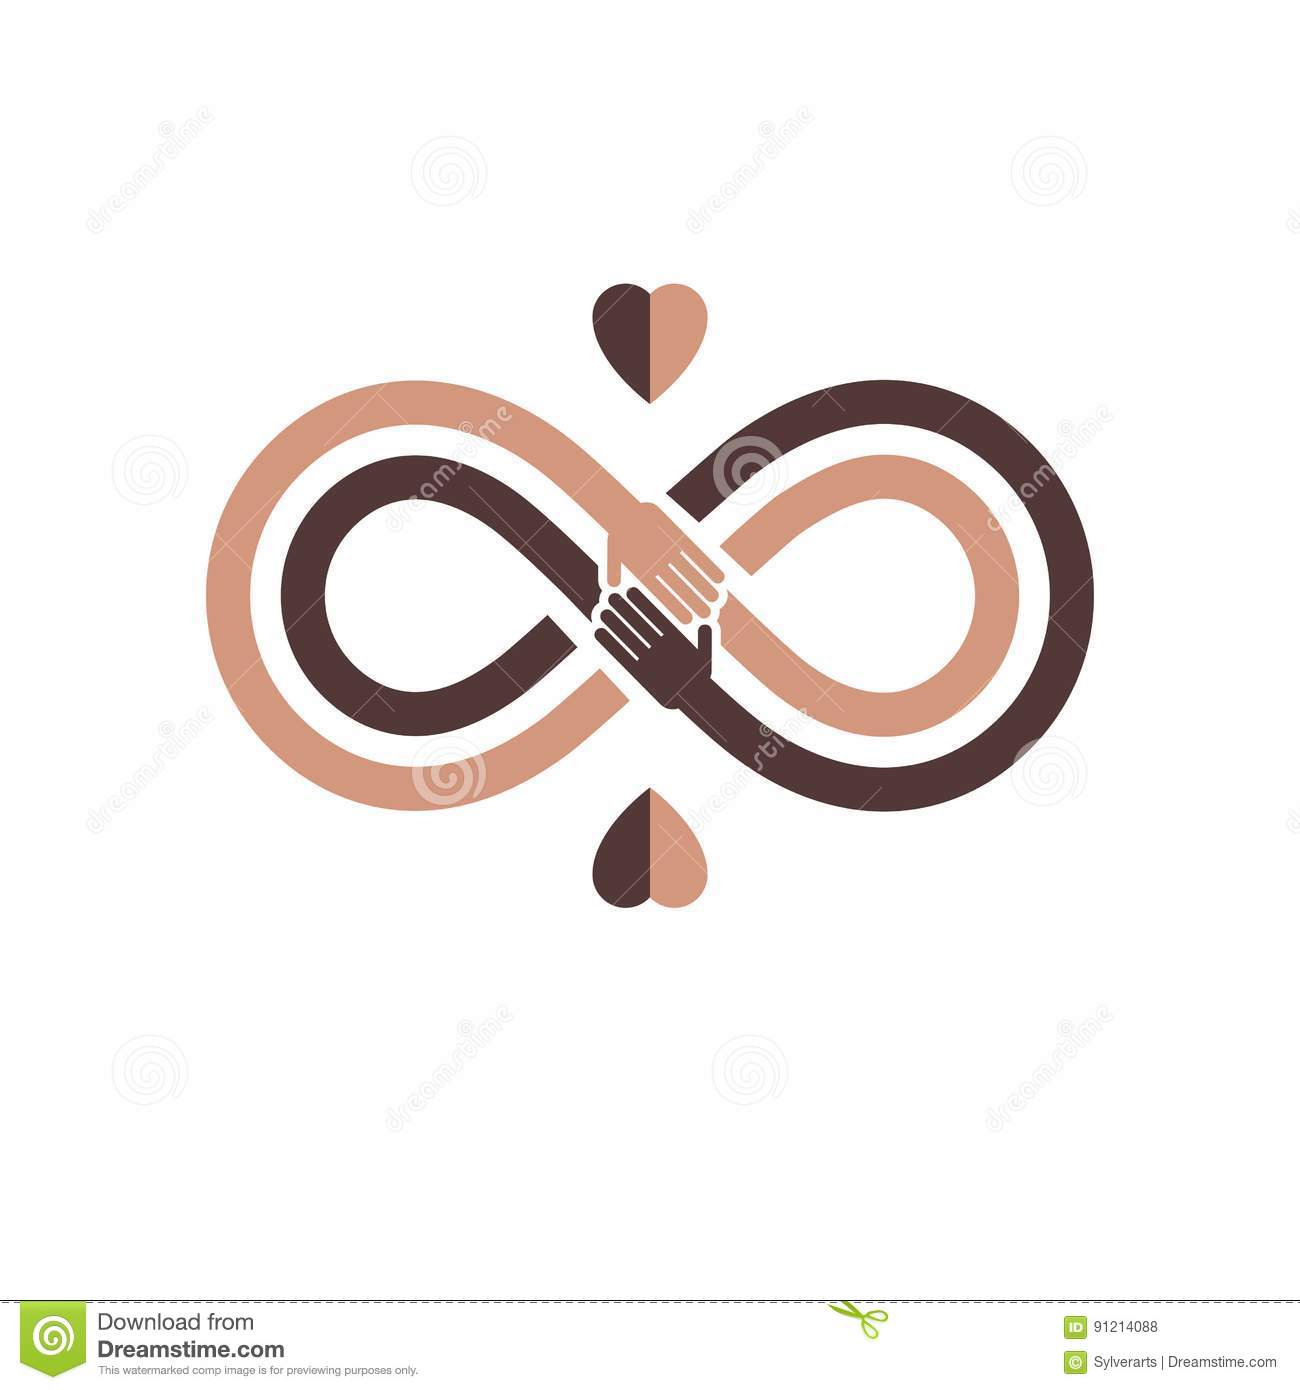 Tolerance stock illustrations 4662 tolerance stock racial tolerance between different nations conceptual symbol ma rtin luther king day zero biocorpaavc Image collections